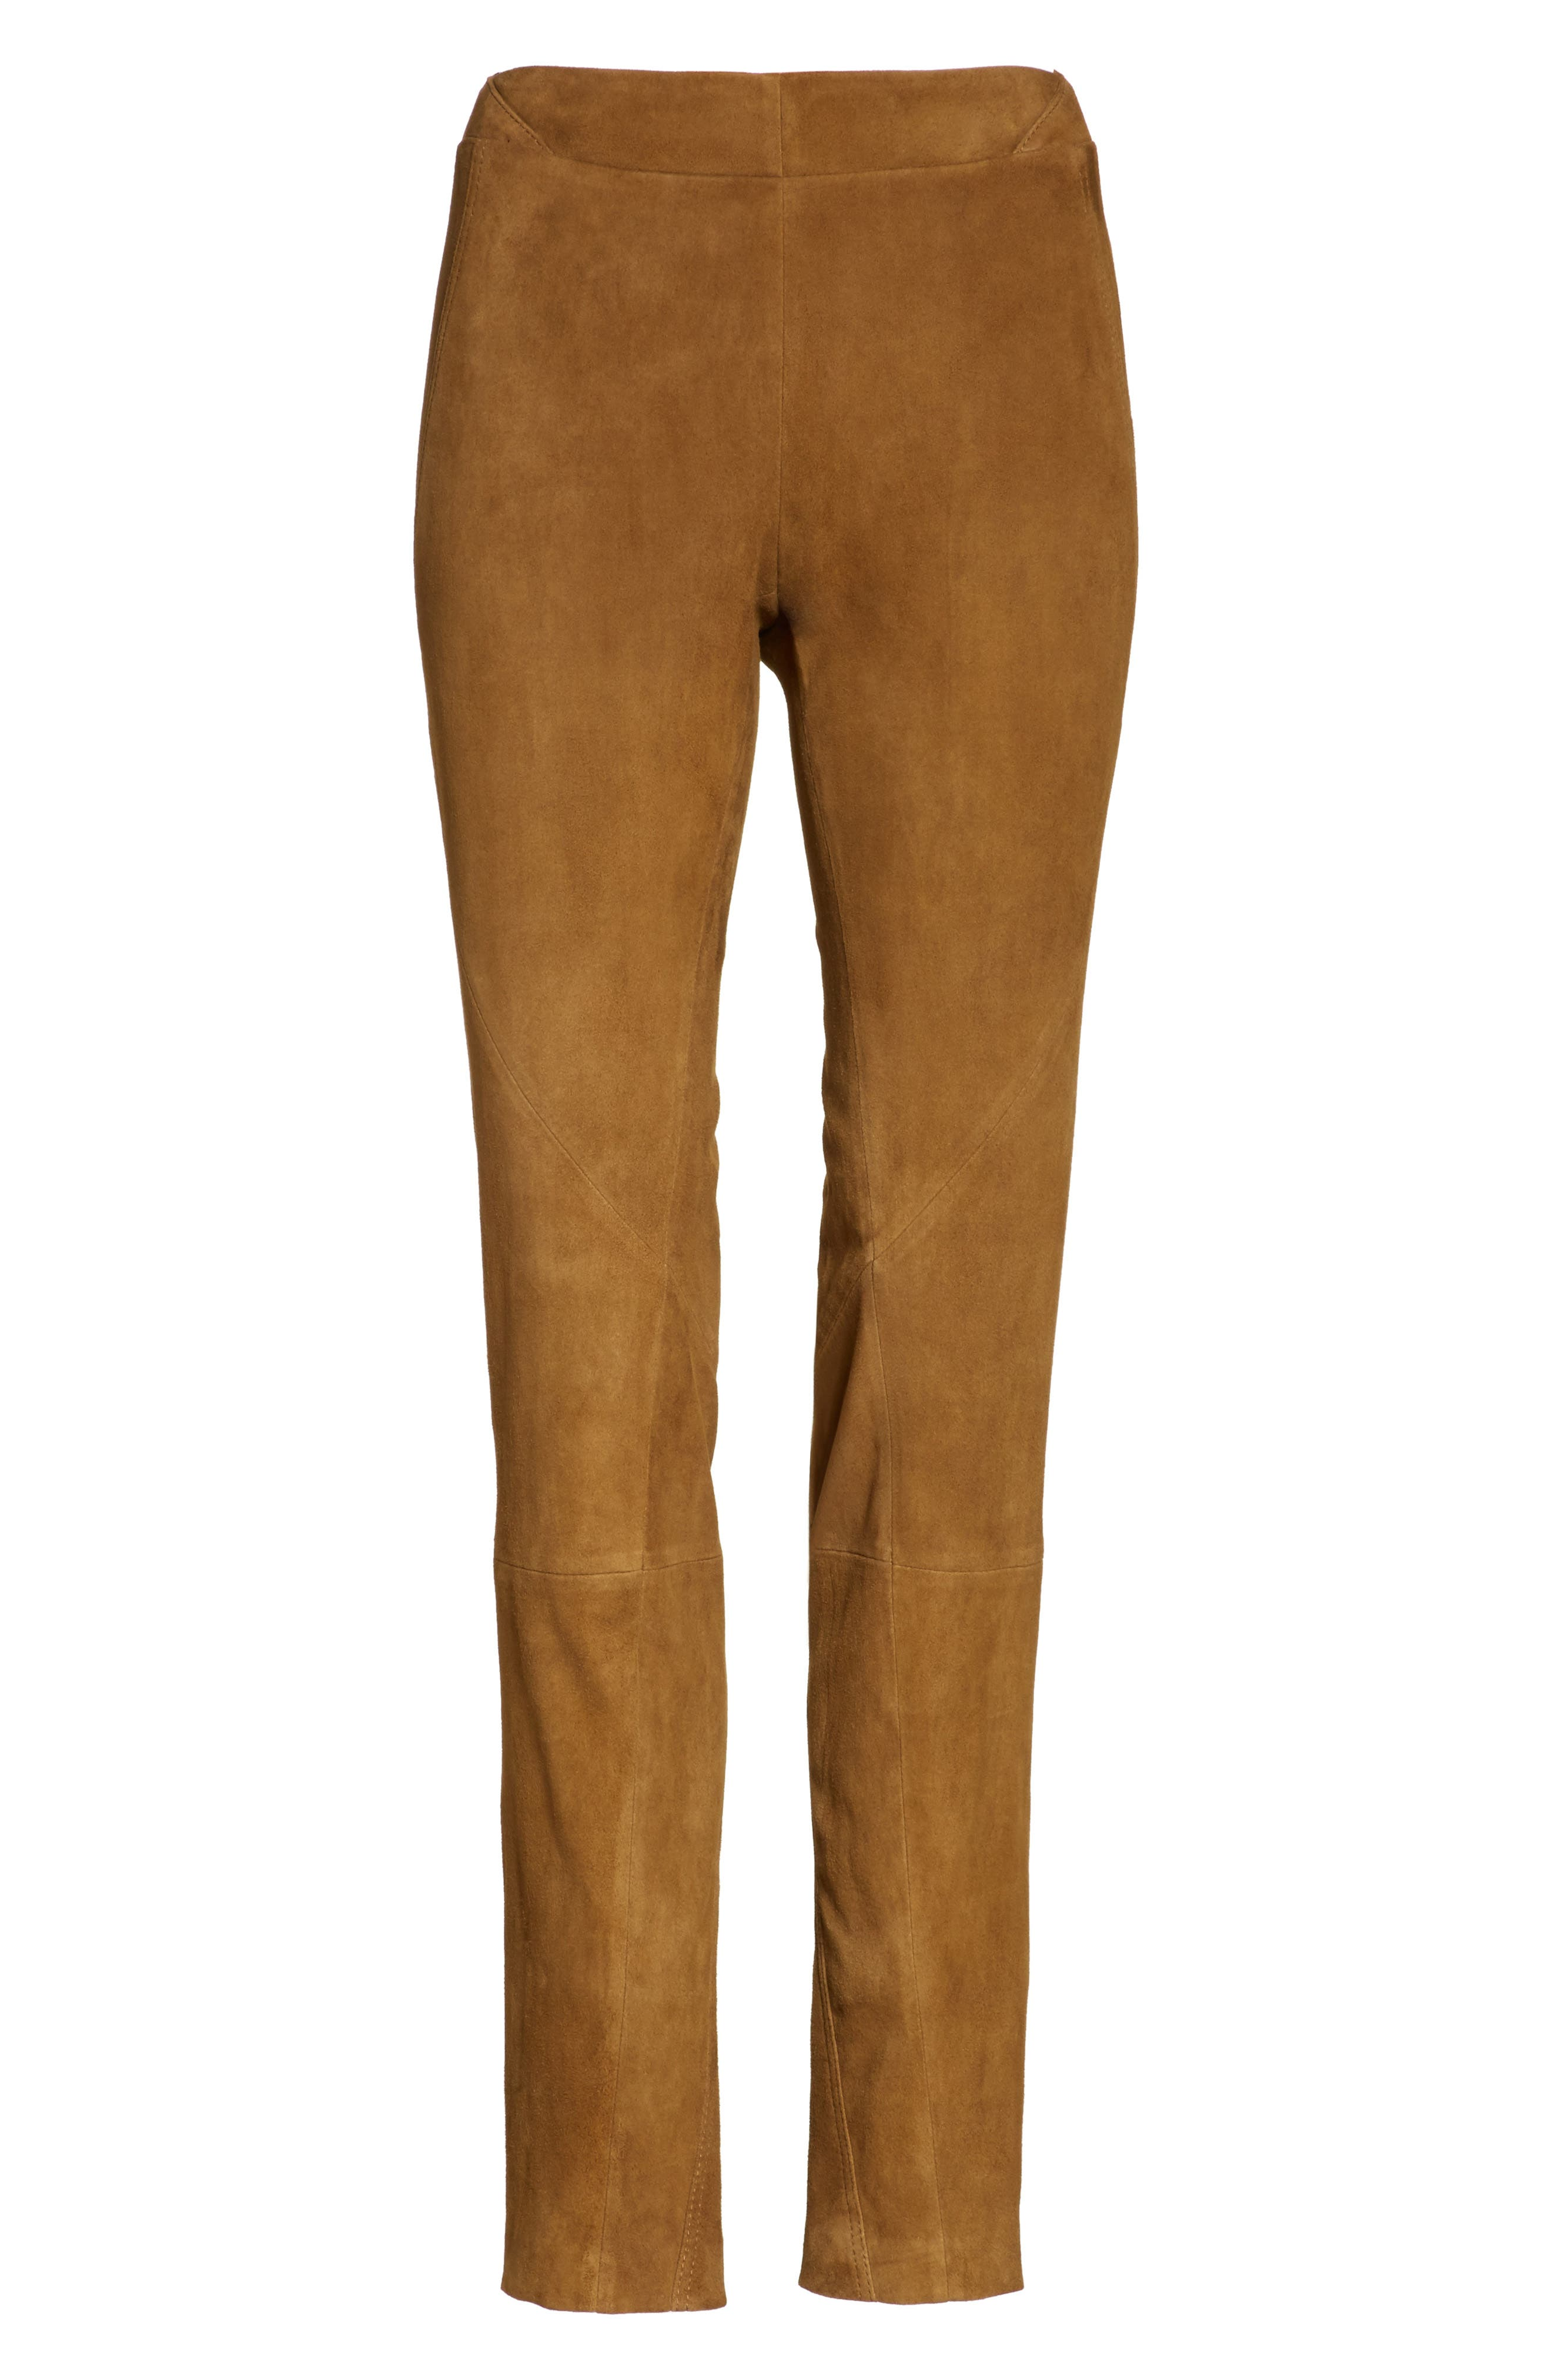 Brooklyn Suede Pants,                             Alternate thumbnail 4, color,                             Sequoia